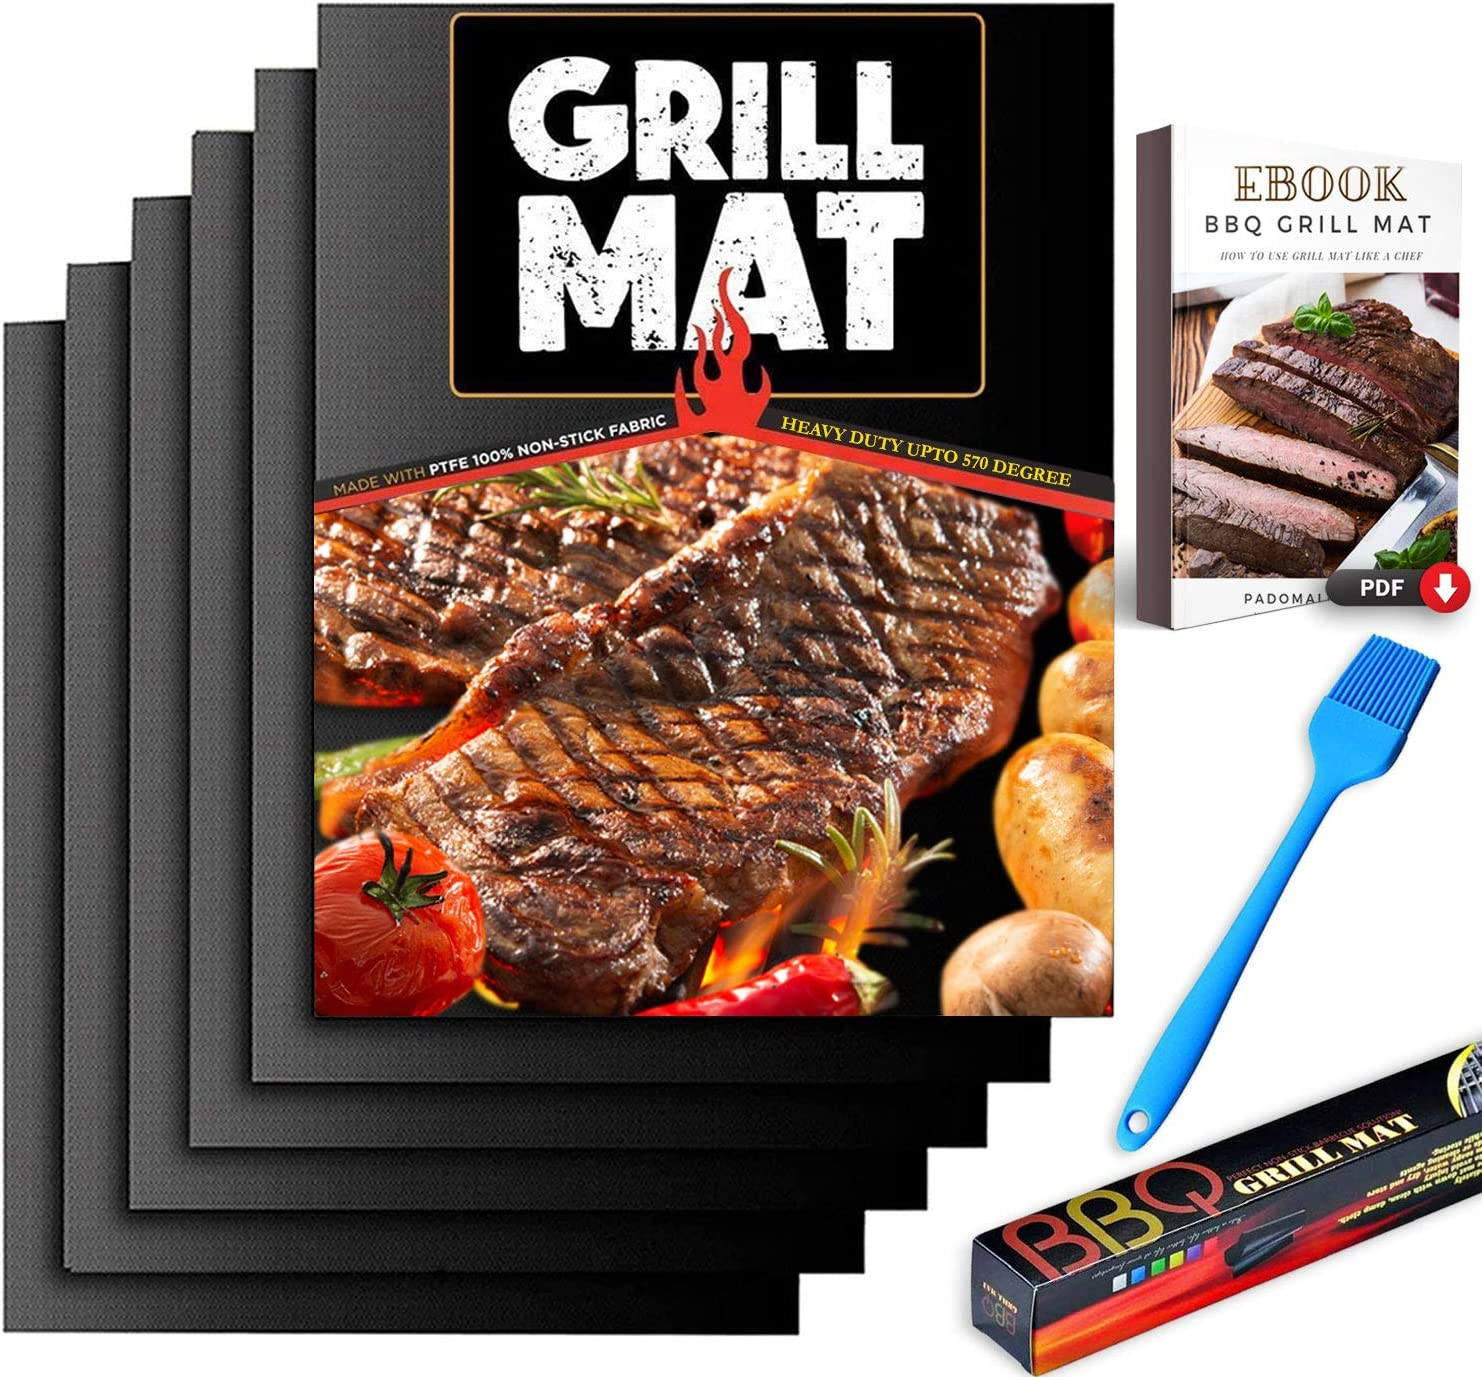 PADOMA BBQ Grill Mat Non Stick - Set of 6 Heavy Duty 570 Degree for Gas Grill & Charcoal Reusable, high Temperature, Easy to Clean, fire Resistant, Grill Mats for Outdoor Grill Accessories